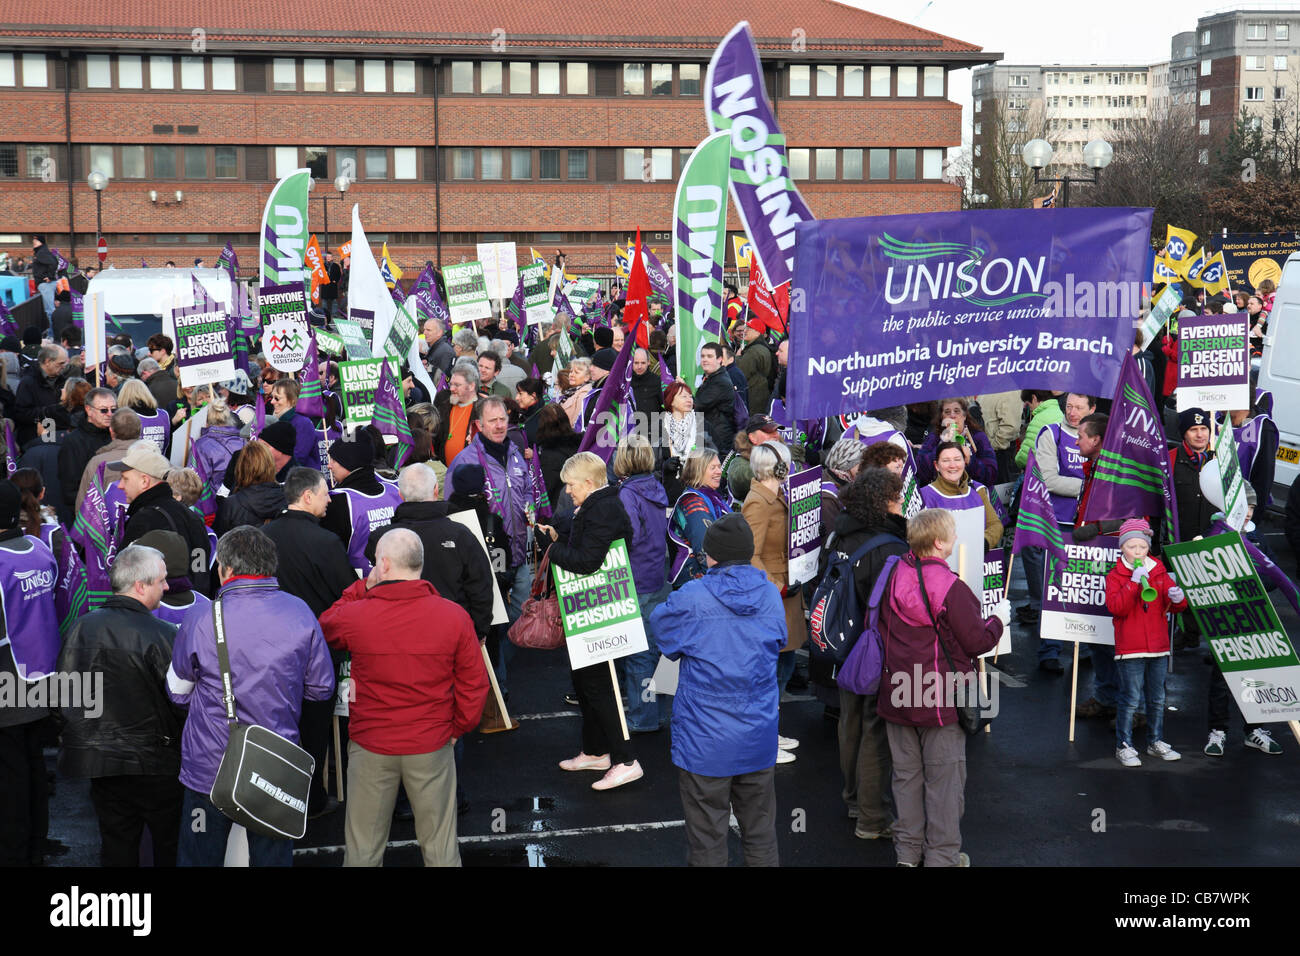 Gathering of trades union members with banners and flags, TUC day of action Gateshead, north east England, UK - Stock Image